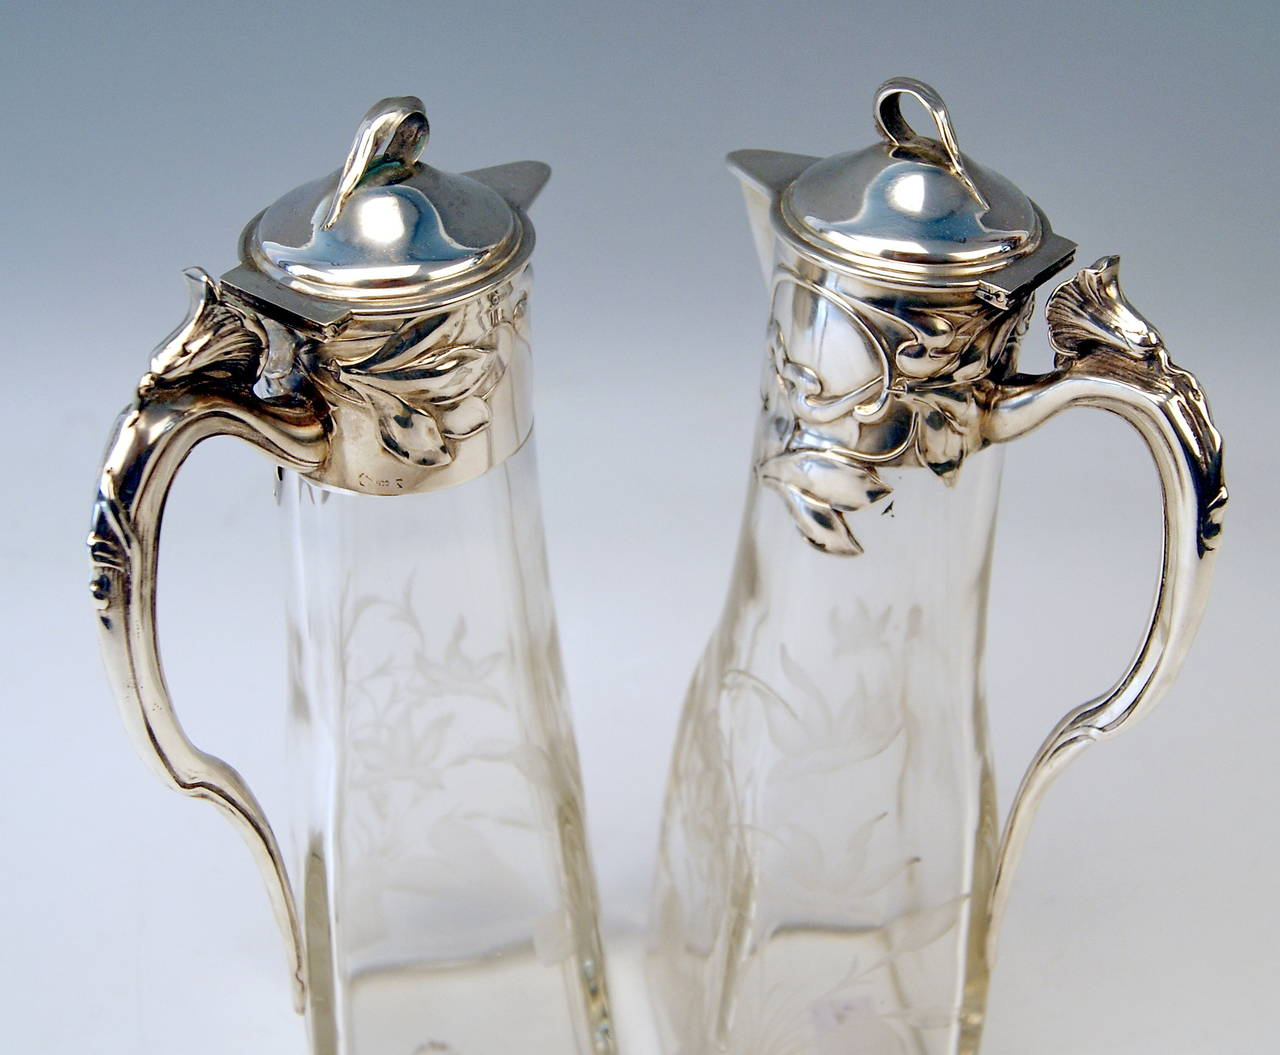 Silver Art Nouveau German Pair of Glass Decanters by Otto Wolter, circa 1900 4